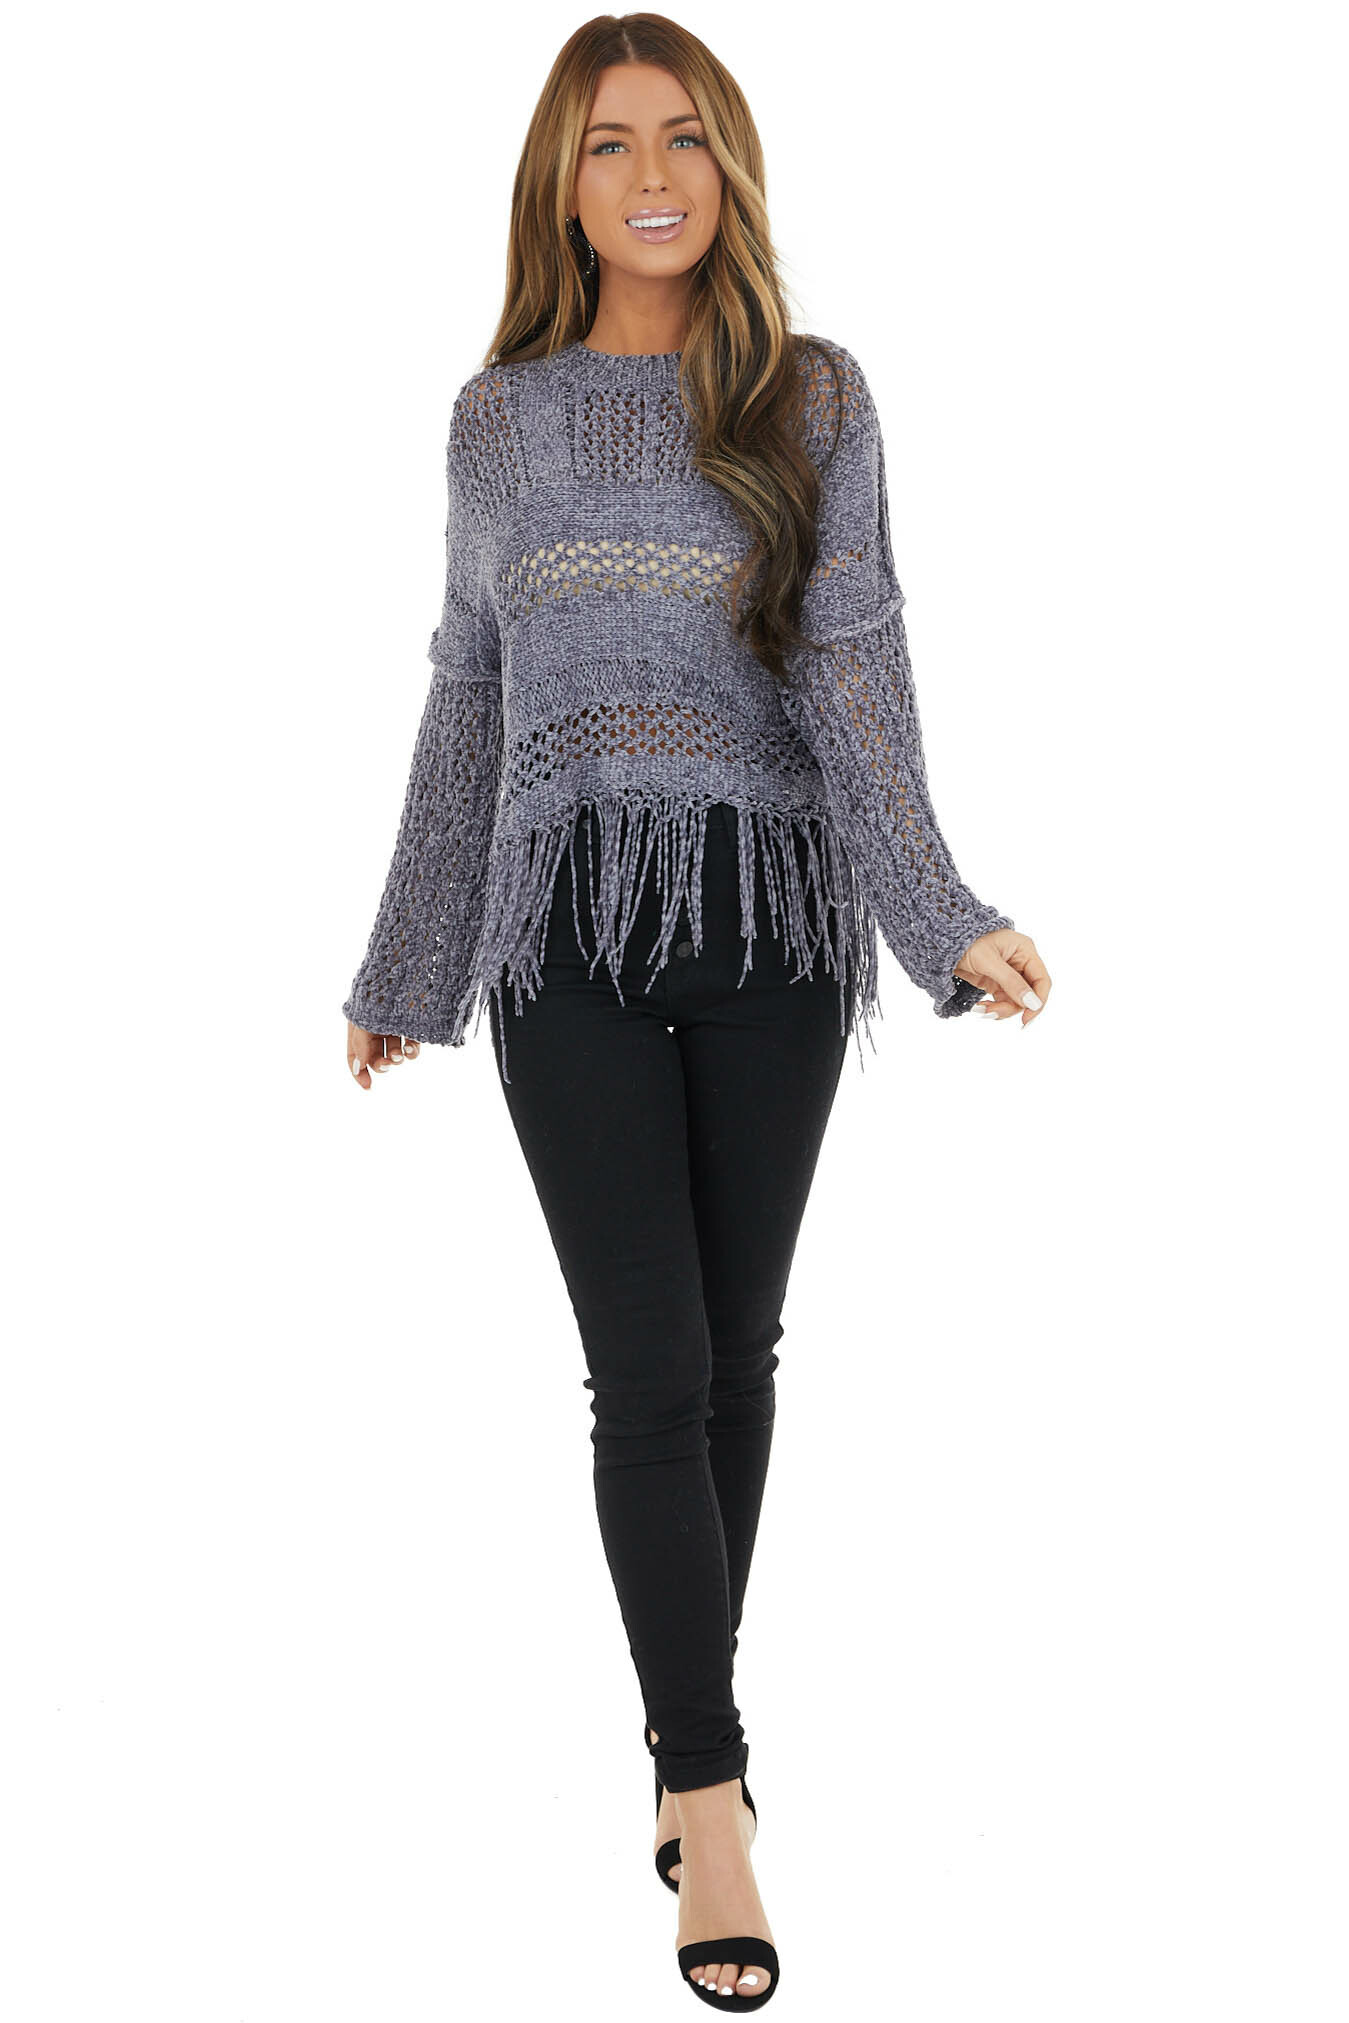 Stormy Grey Super Soft Knit Sweater with Fringe Details